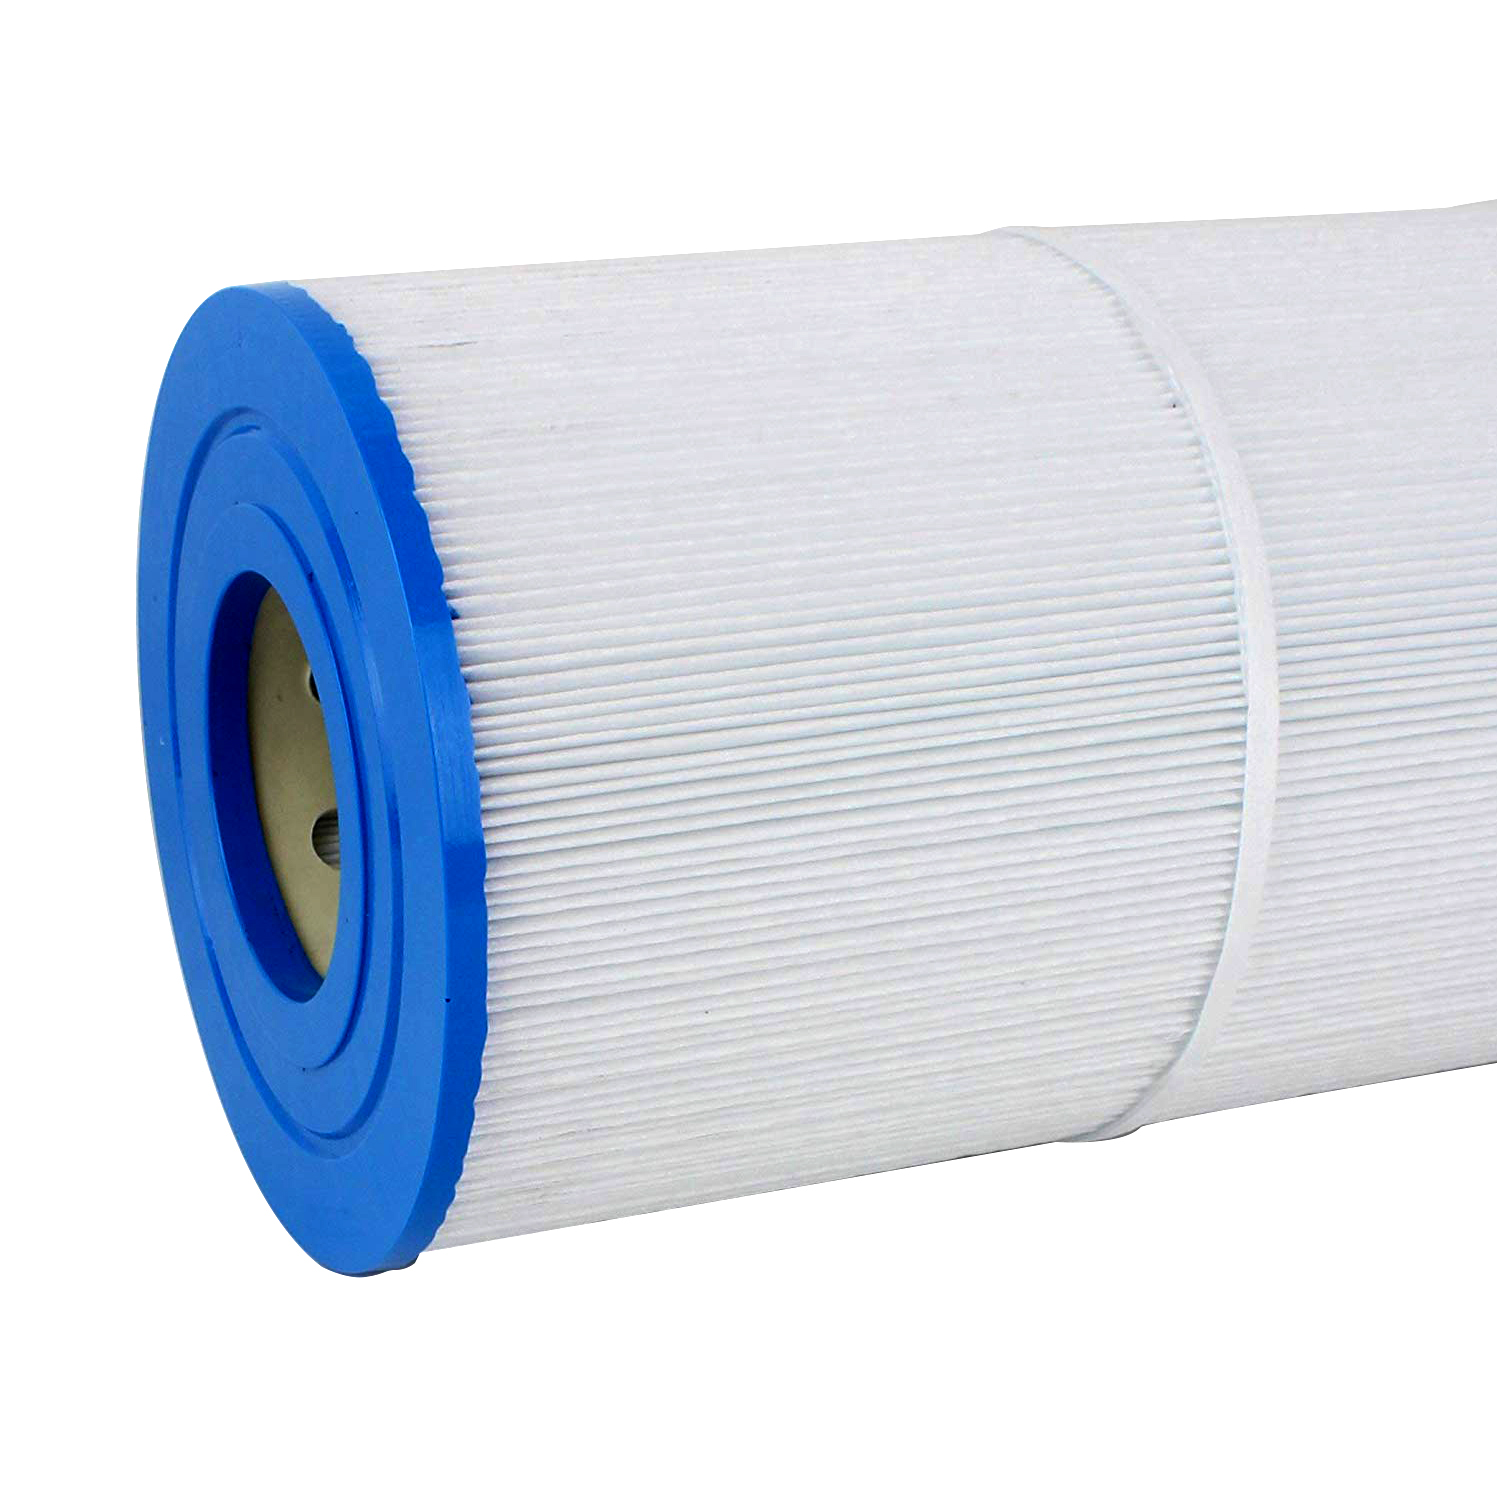 High Quality for Alkaline Water Filter Cartridge -